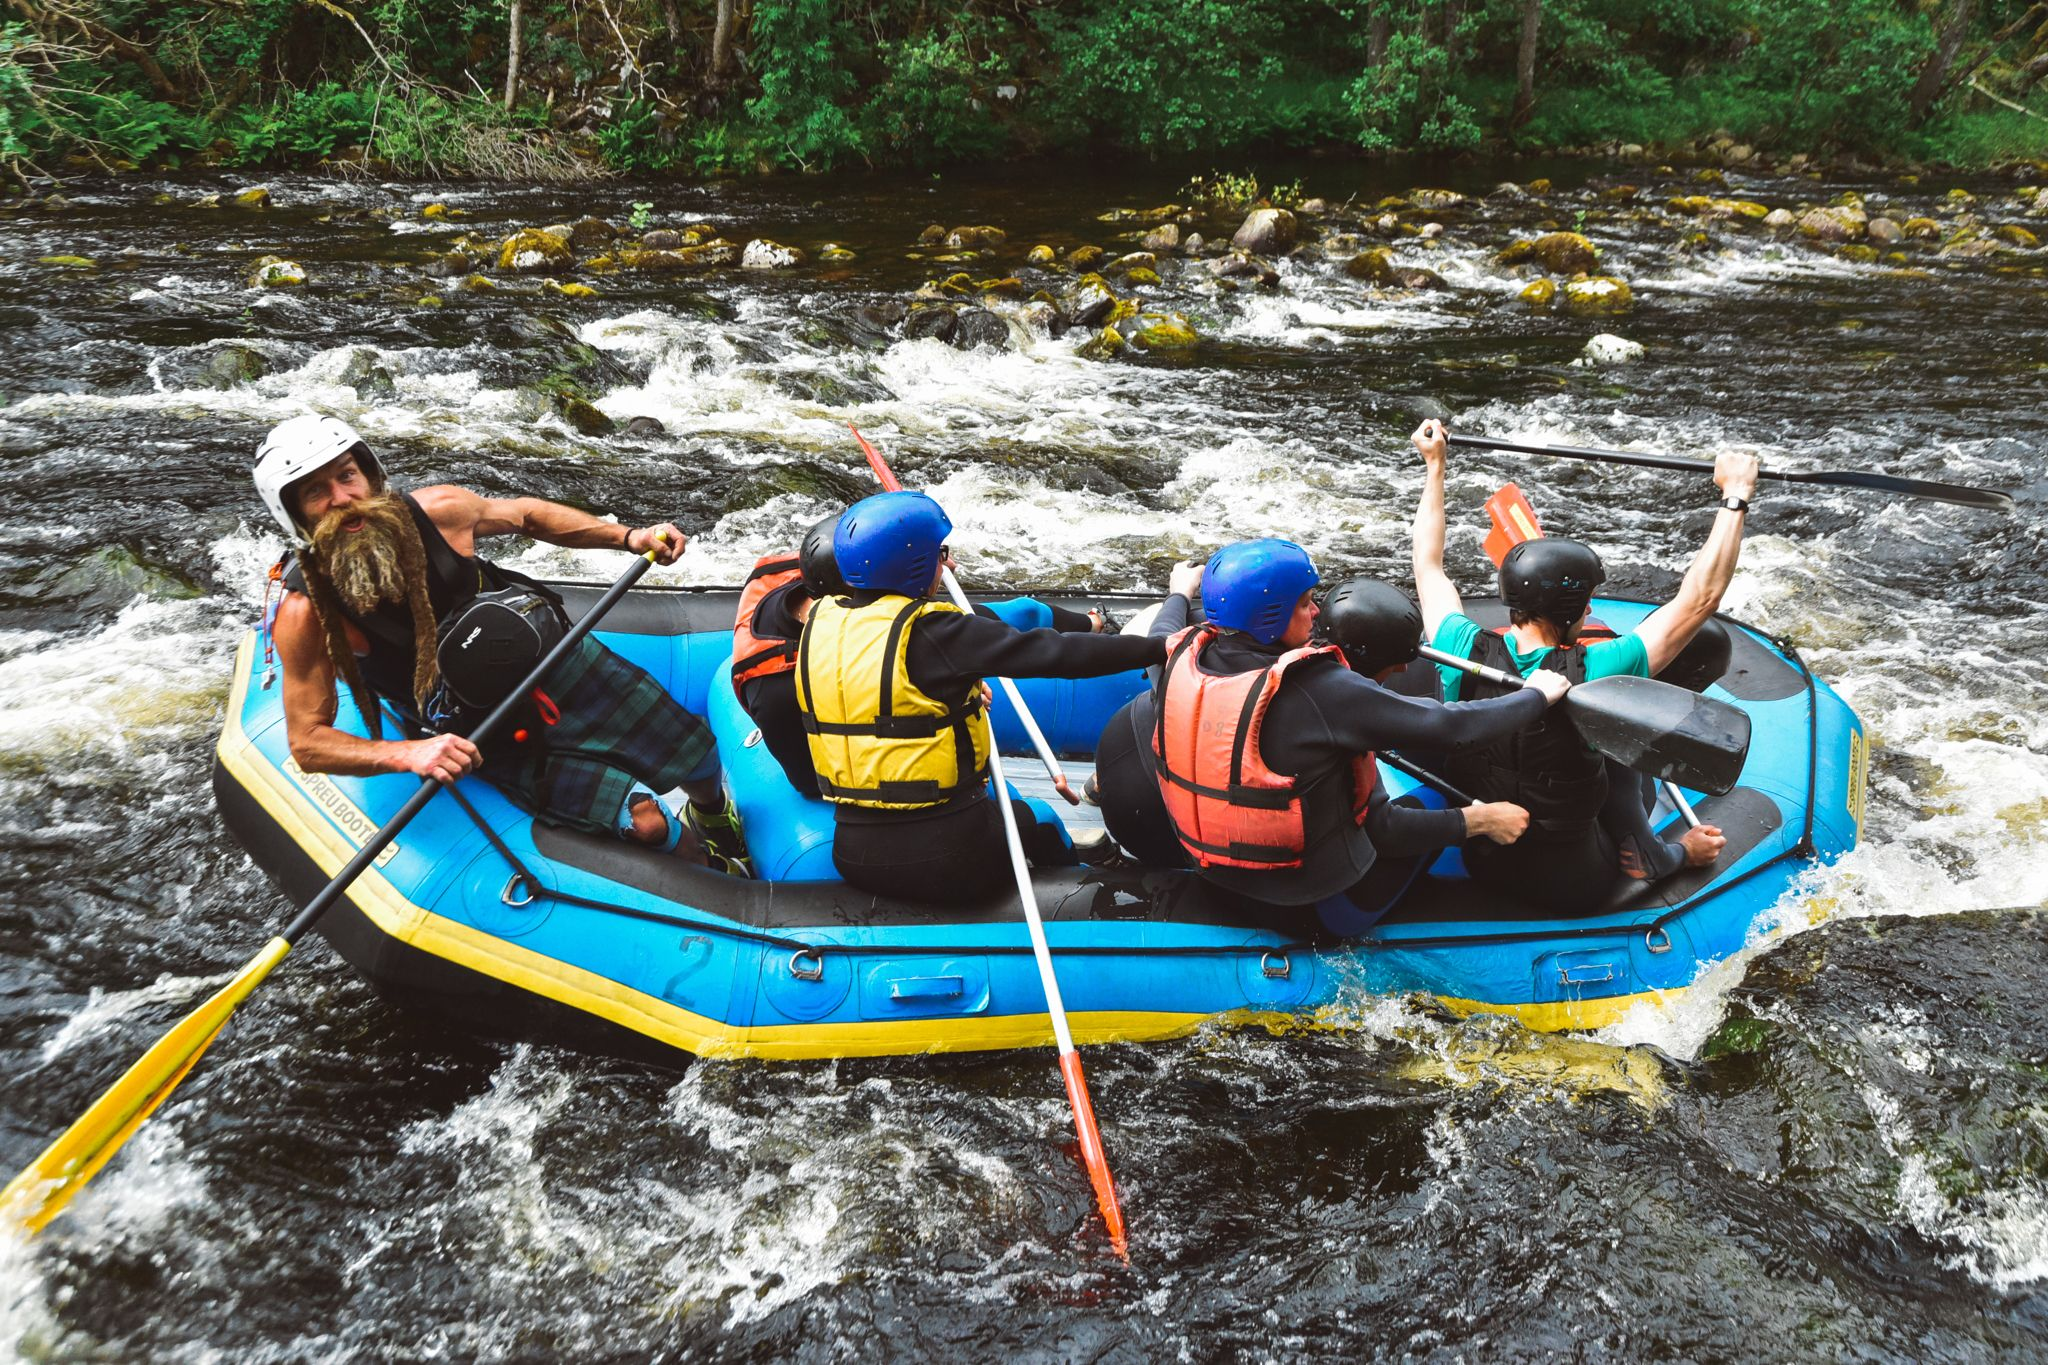 rafting tummel freespirits adventure photography